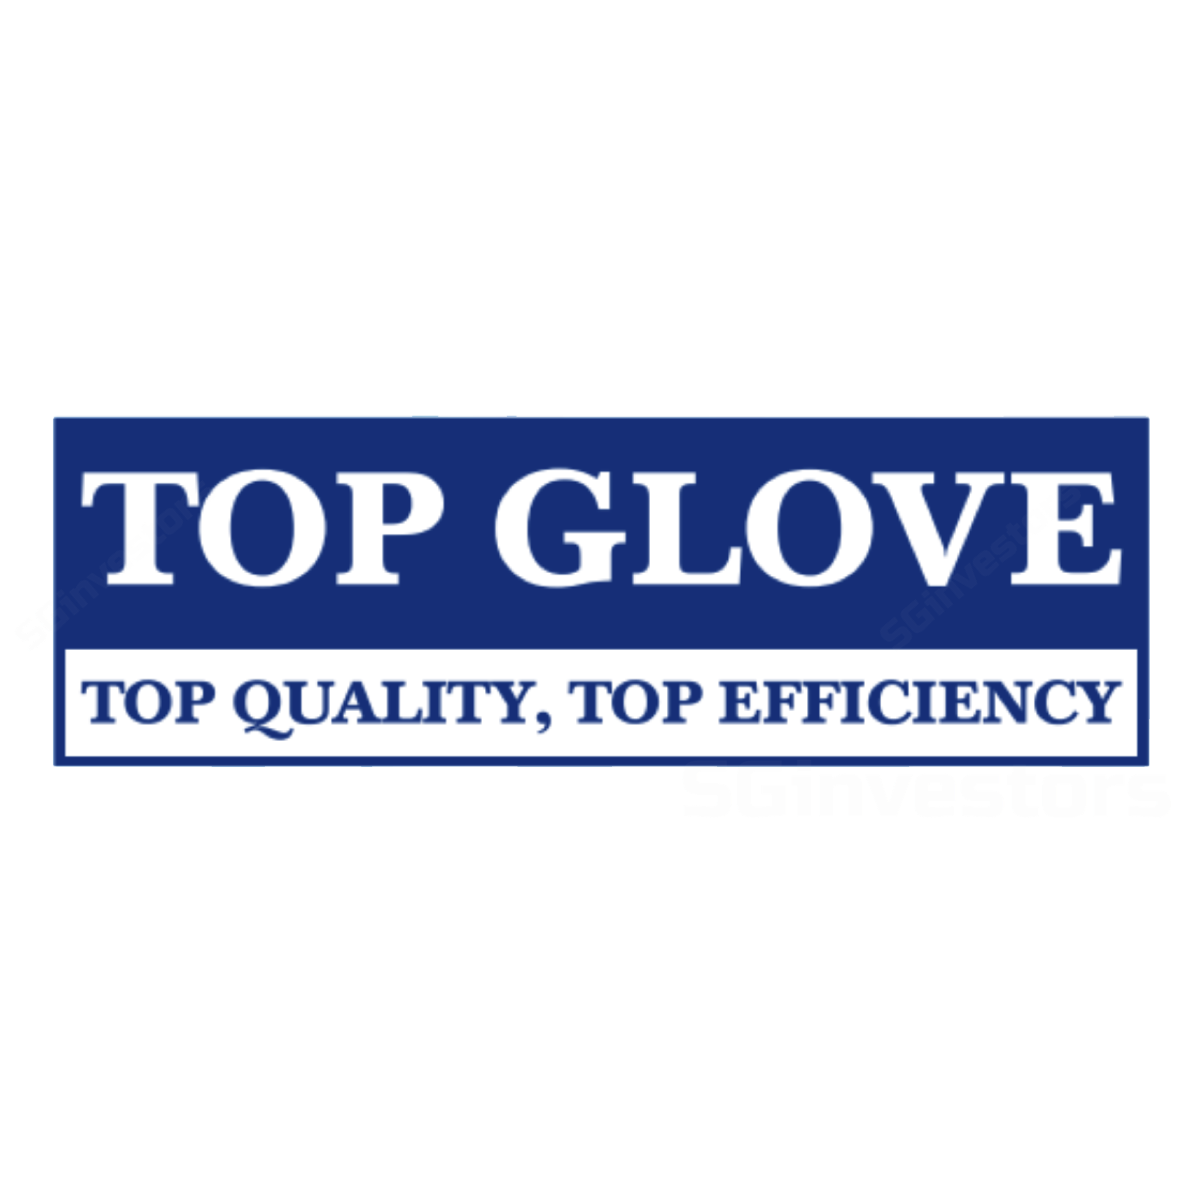 Top Glove (TOPG MK) - UOB Kay Hian 2018-03-16: 2QFY18: Within Estimates But Risk-reward Unattractive